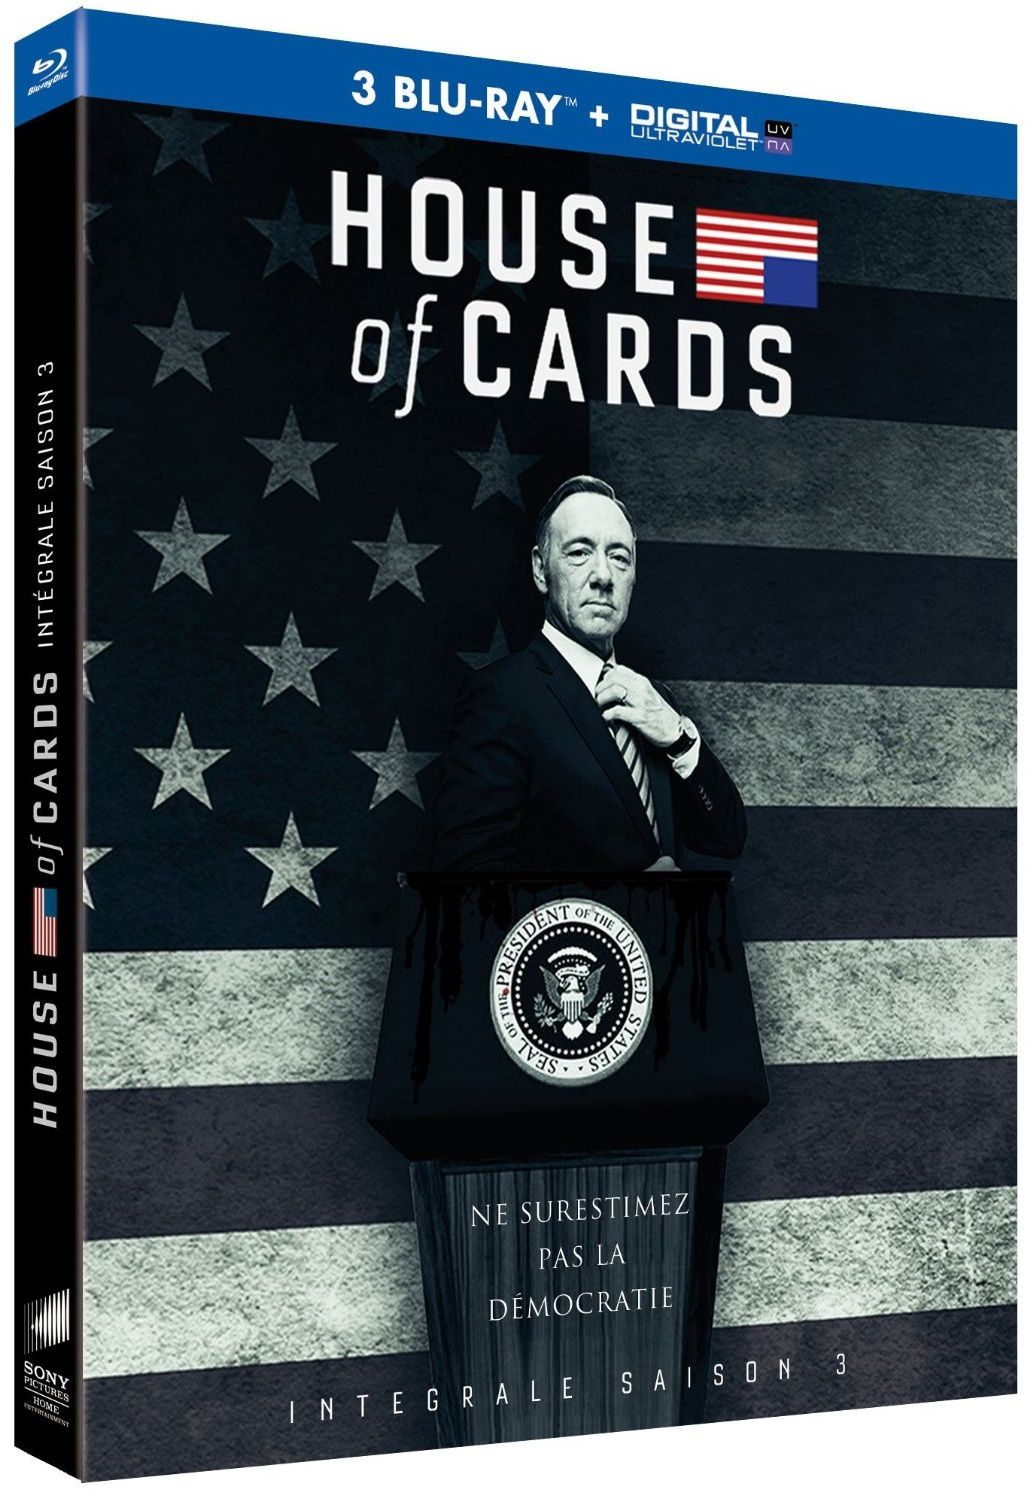 House of cards saison 3 en dvd/blu-ray/digital ultraviolet